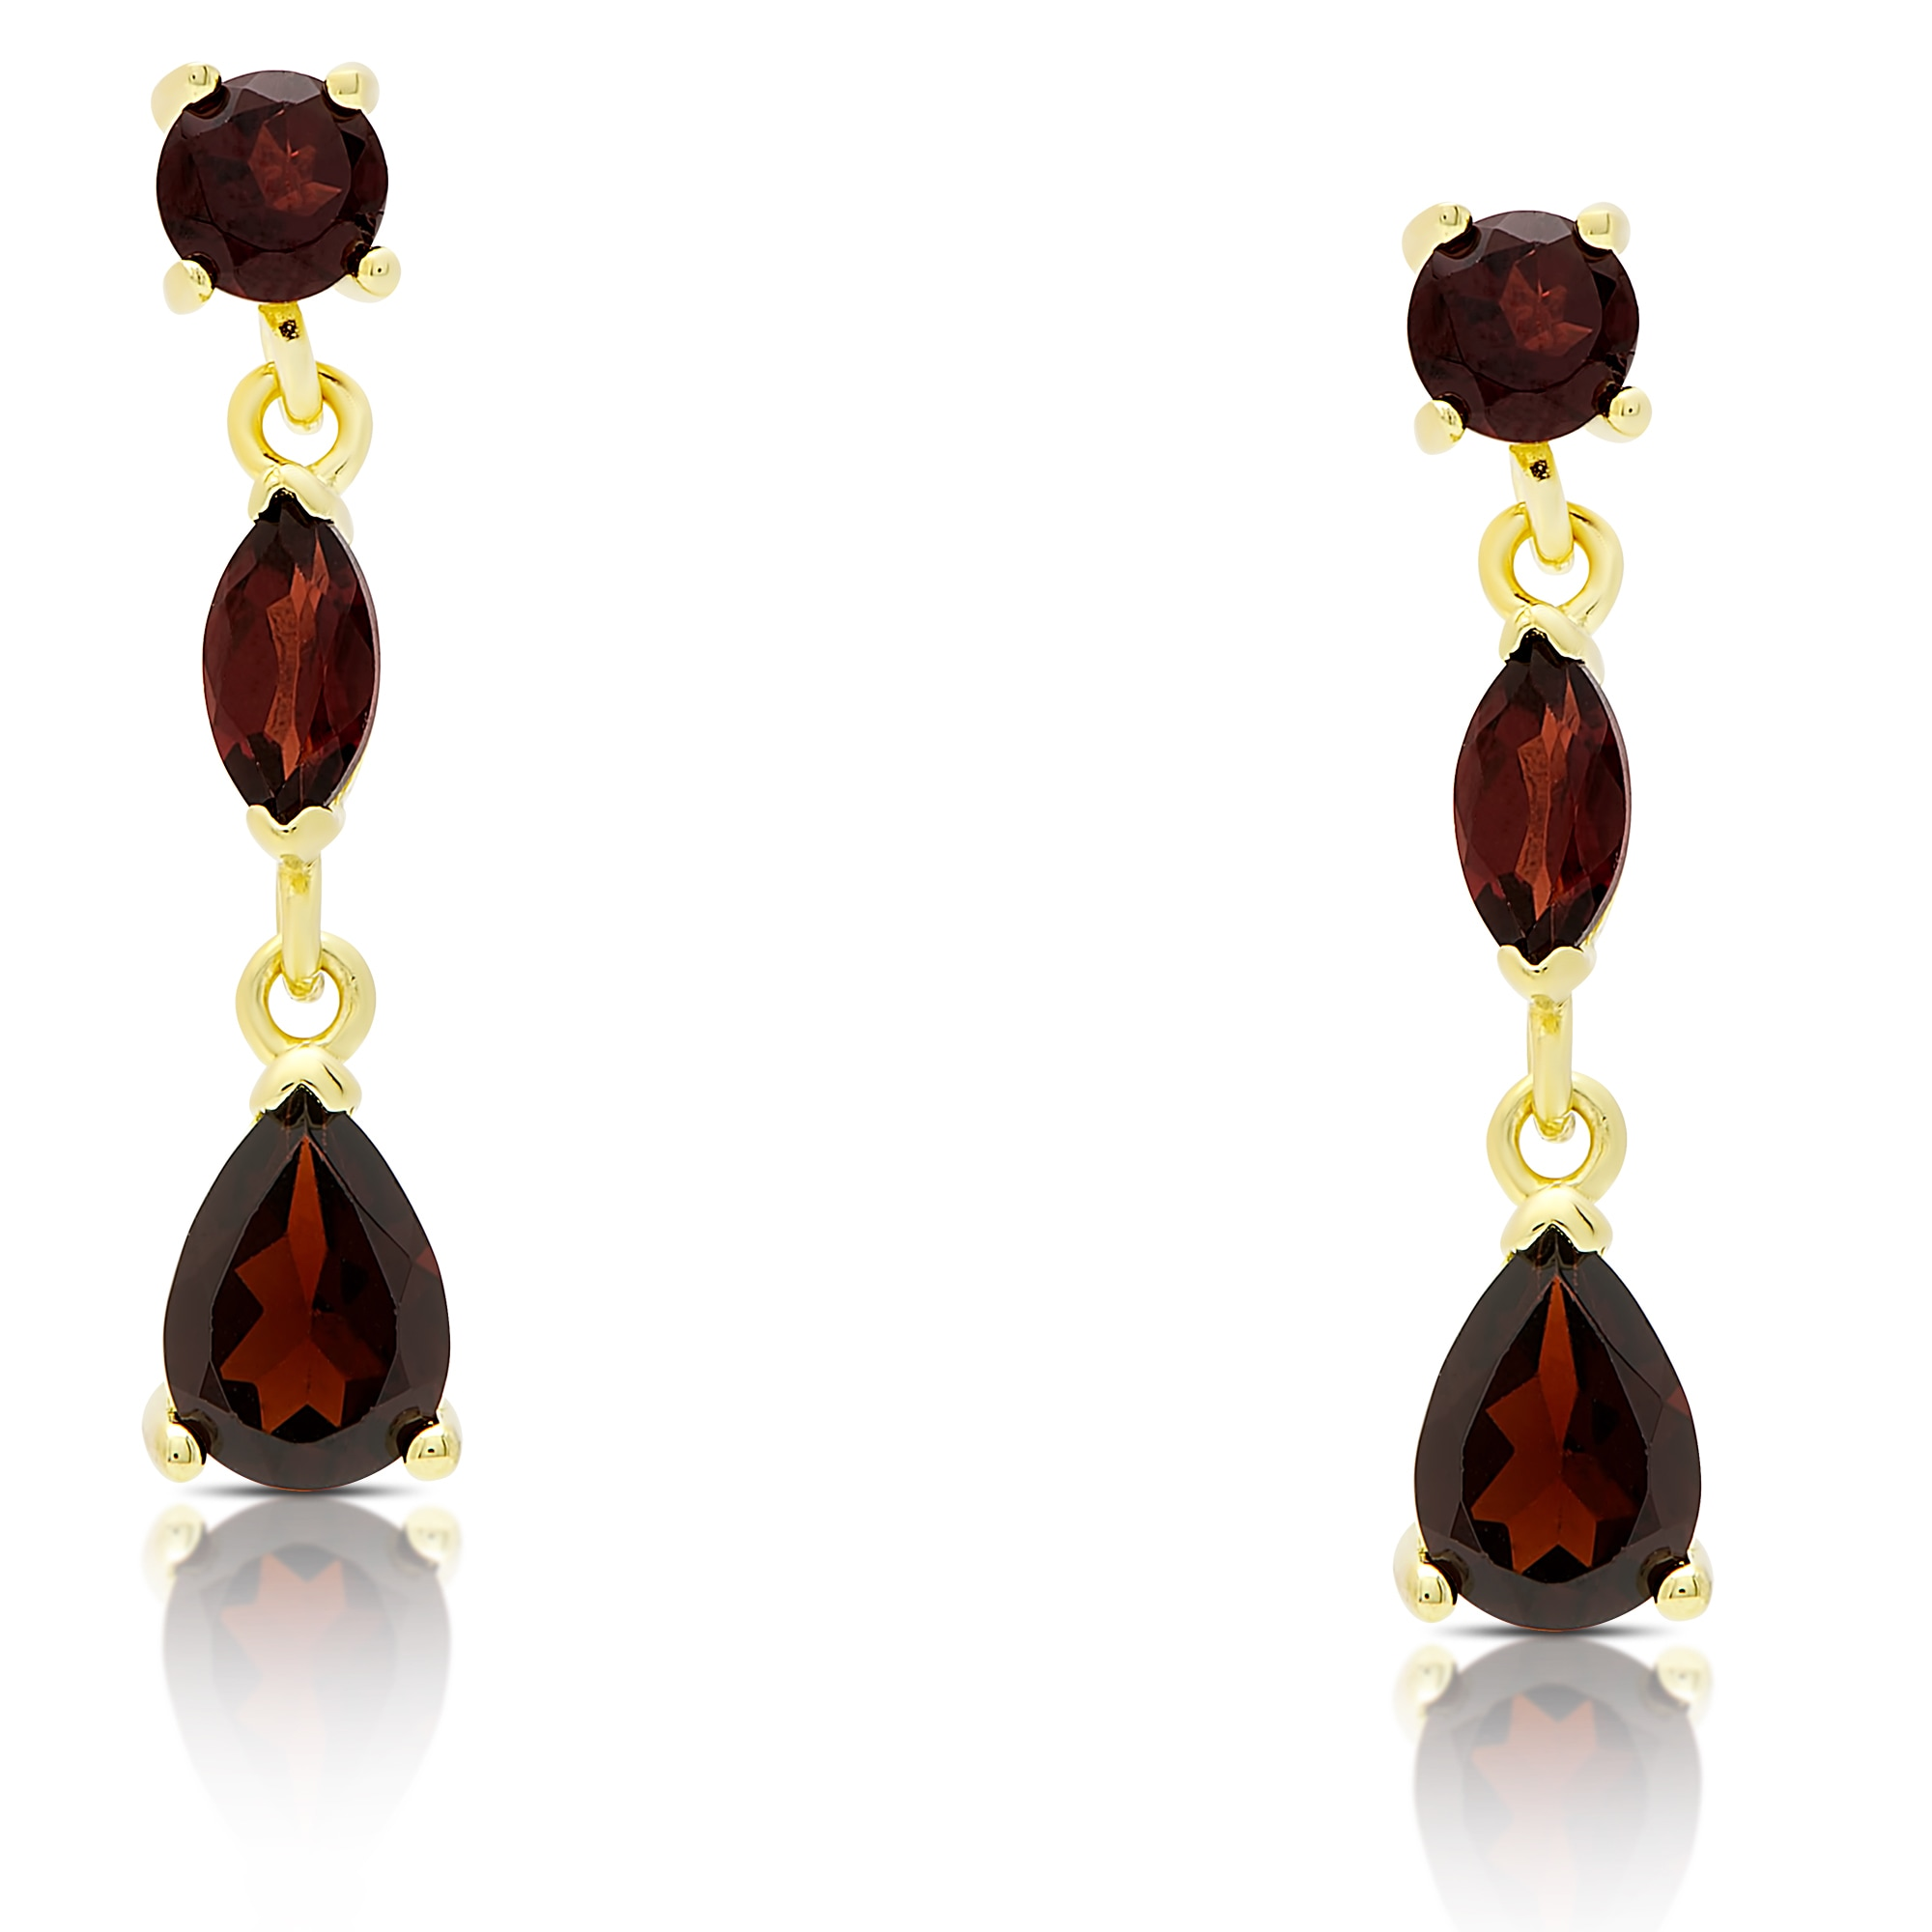 Dolce Giavonna Gold Over Sterling Silver Garnet Teardrop Dangle Earrings Free Shipping On Orders 45 18998079